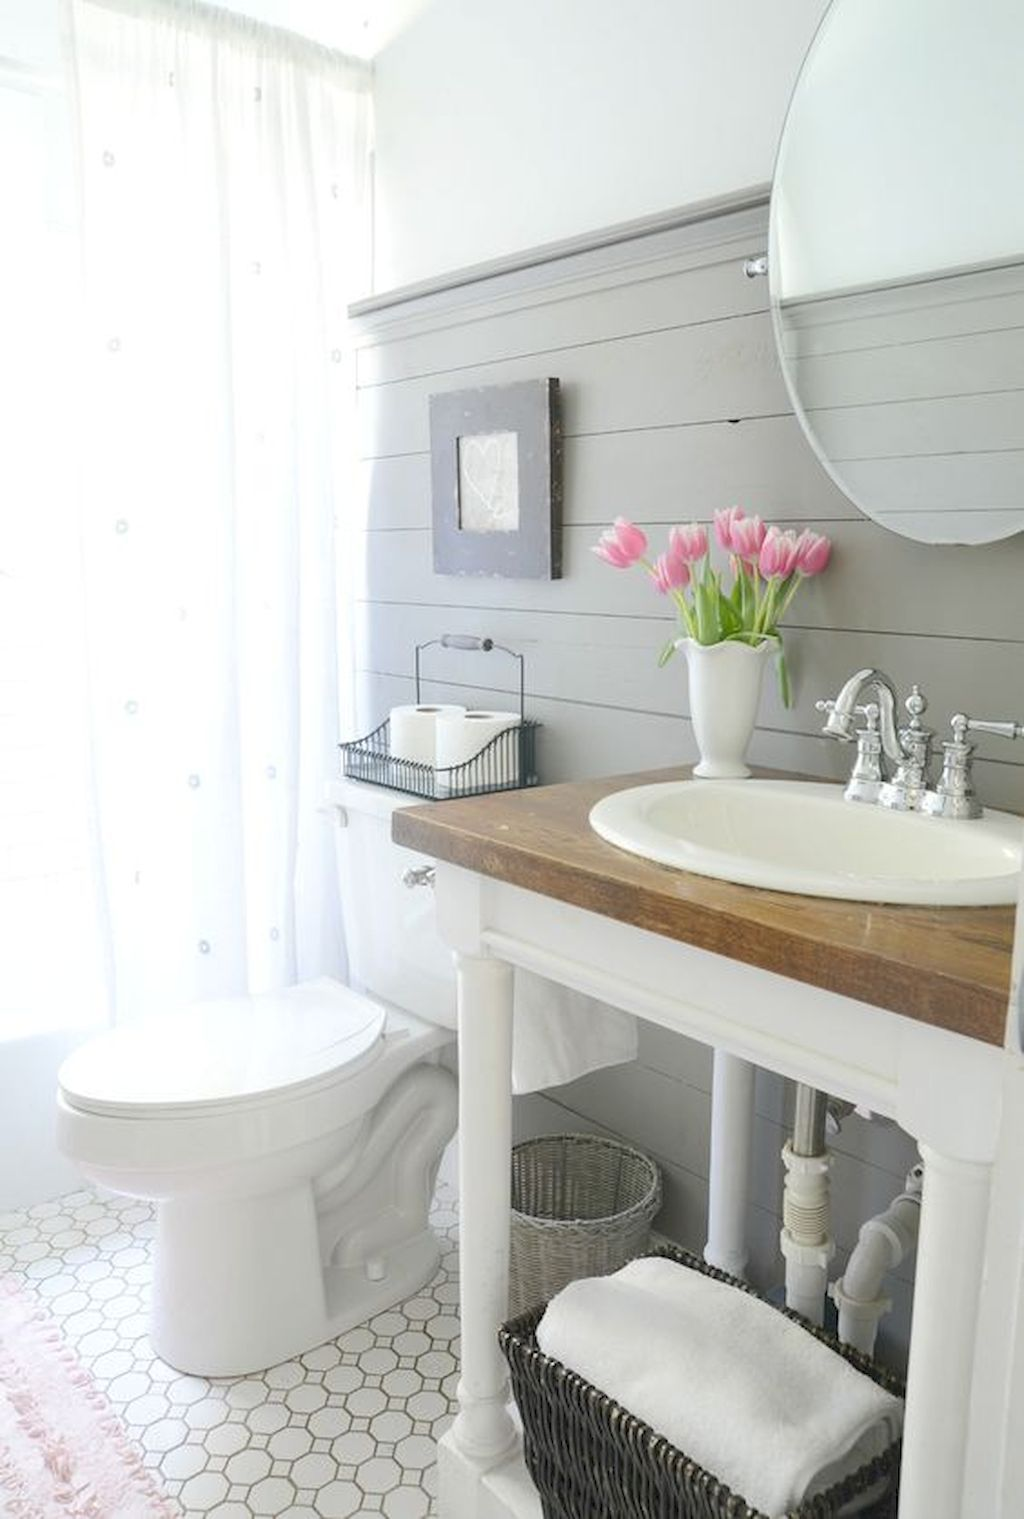 Cool 60 Vintage Farmhouse Bathroom Remodel Ideas on A Budget https ...